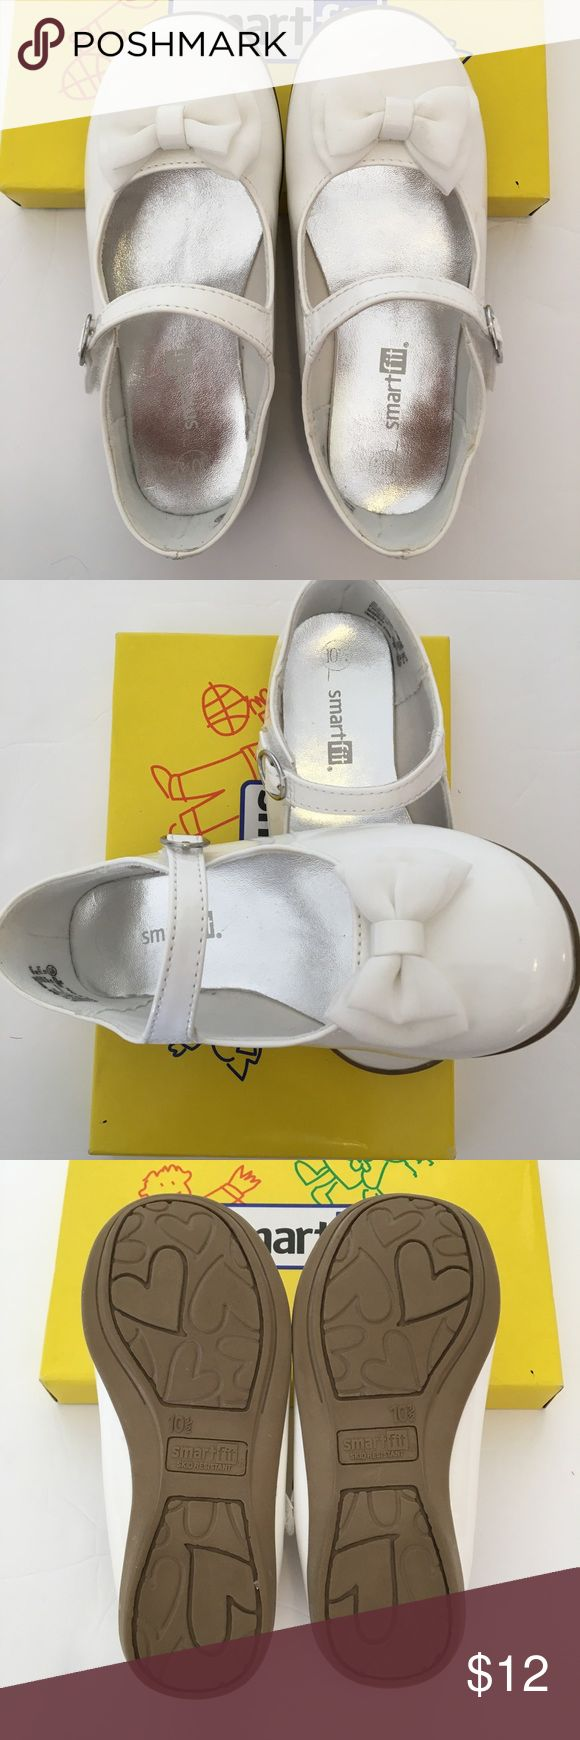 Smart fit White Patent address Shoes with Bow White faux patent dress shoes in size 10.5. Cute ribbon detail, skid resistant bottom, padded insole with a velcro strap. Only worn once for a few hours for a wedding. Has a slight dirt mark on little part of ribbon (please see closeup ribbon pic). Velcro part on right shoe has a little yellow mark as well. Both will probably come off with soap & water. Otherwise in excellent barely worn condition. Comes with original box. Comes from smoke & pet…